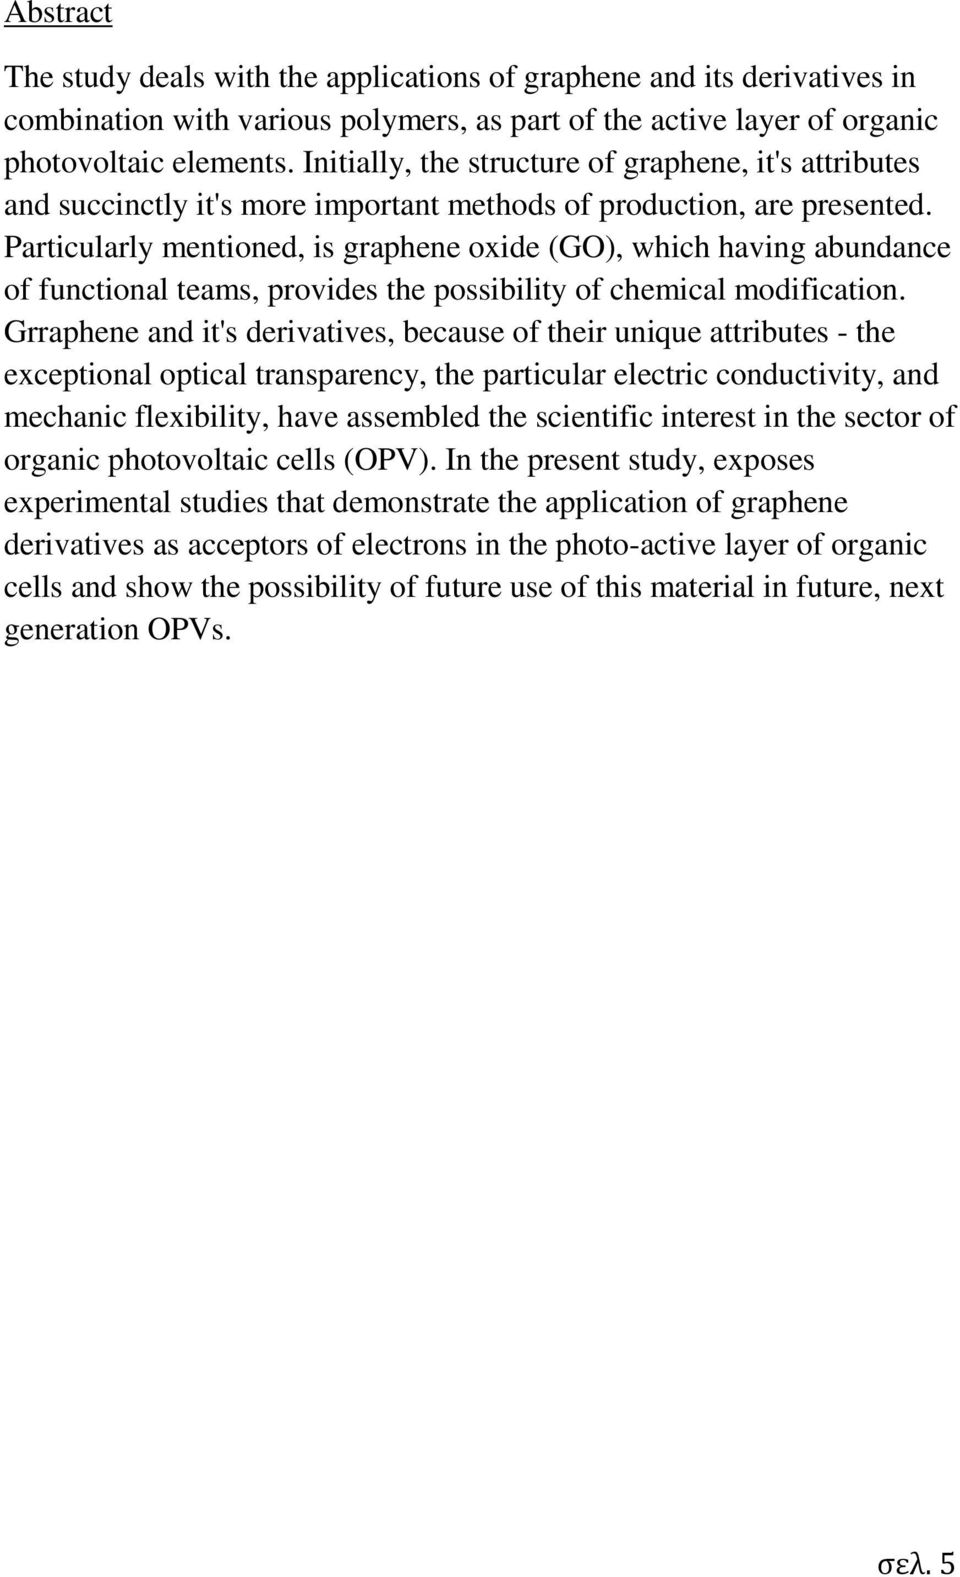 Particularly mentioned, is graphene oxide (GO), which having abundance of functional teams, provides the possibility of chemical modification.